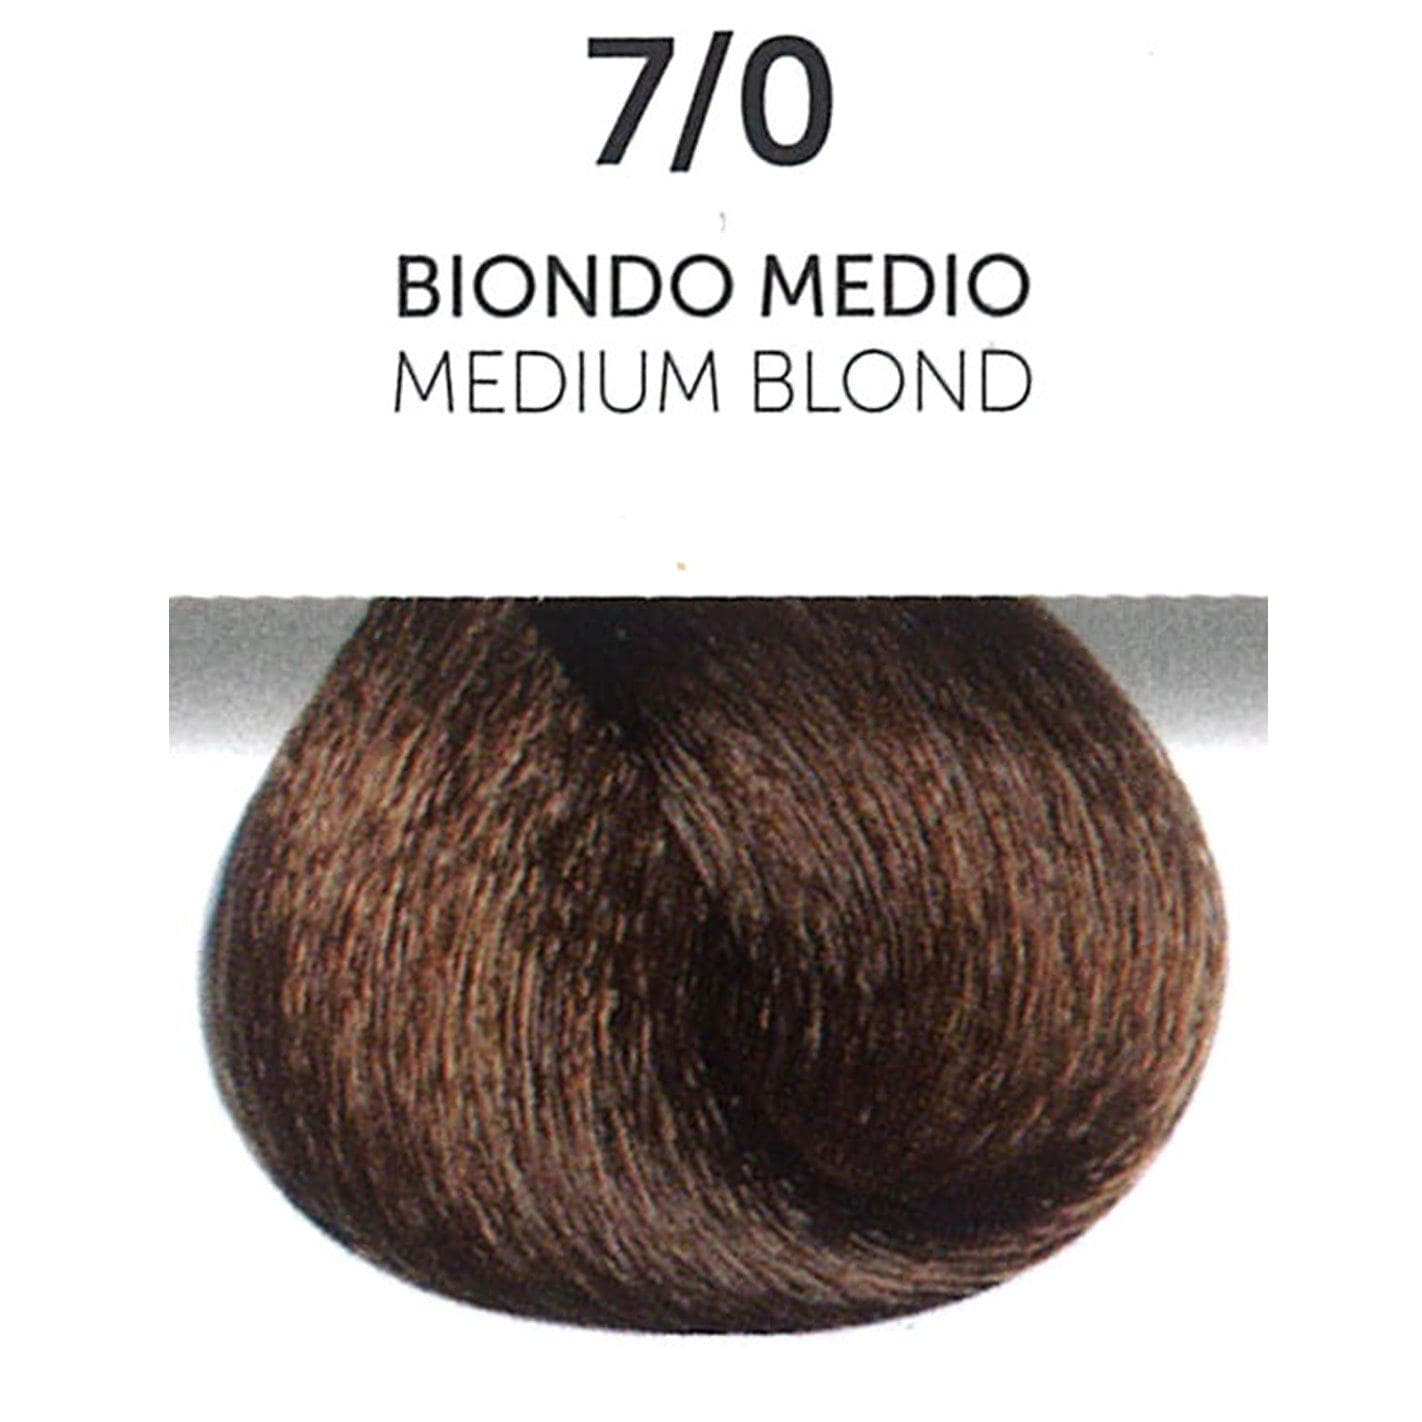 7/0 Medium Blonde | Permanent Hair Color | Perlacolor | OYSTER | SHSalons.com